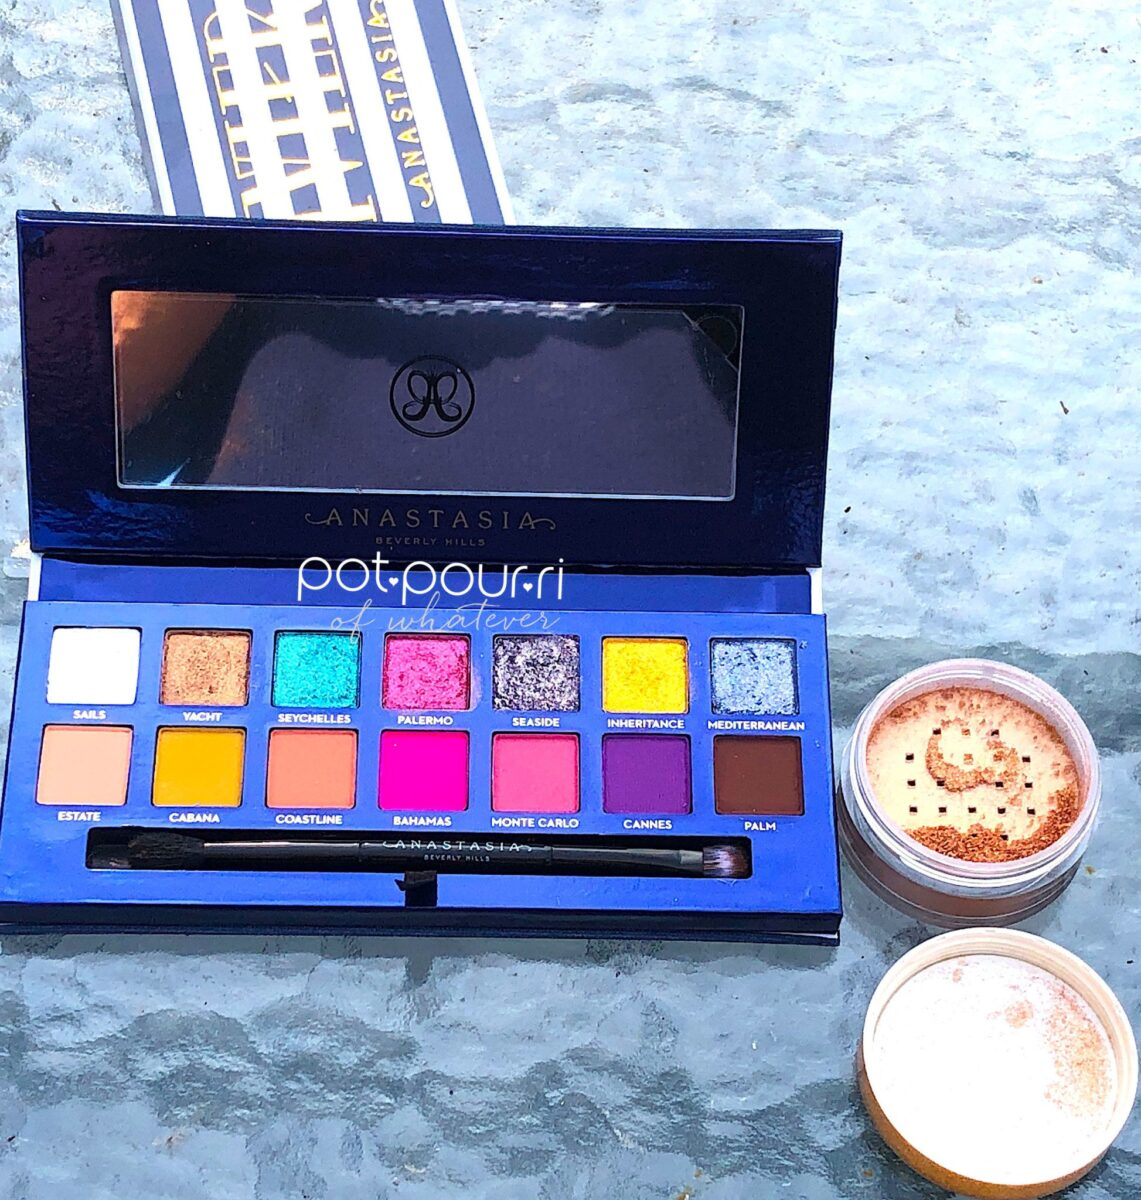 ANASTASIA RIVIERA EYE SHADOW PALETTE AND ANASTASIA LOOSE HIGHLIGHTER IN SO HOLLYWOOD